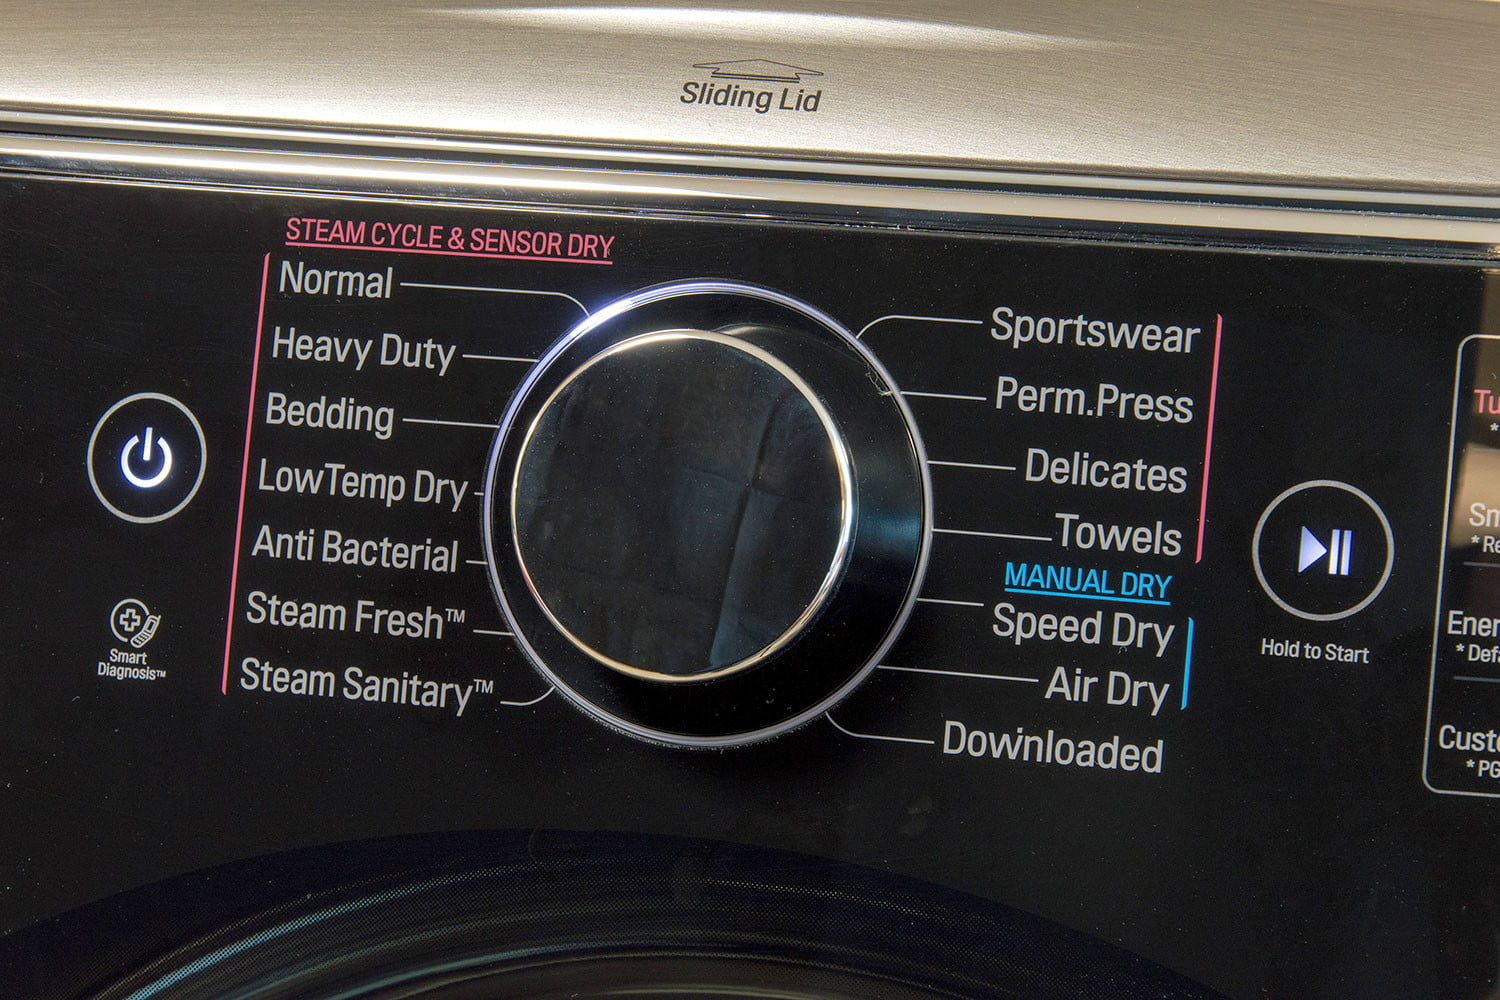 Diy Dryer Wiring Reinvent Your Diagram Kenmore 3 Prong Free Download Gas Dryers Vs Electric What S The Difference Digital Trends Rh Digitaltrends Com Maytag